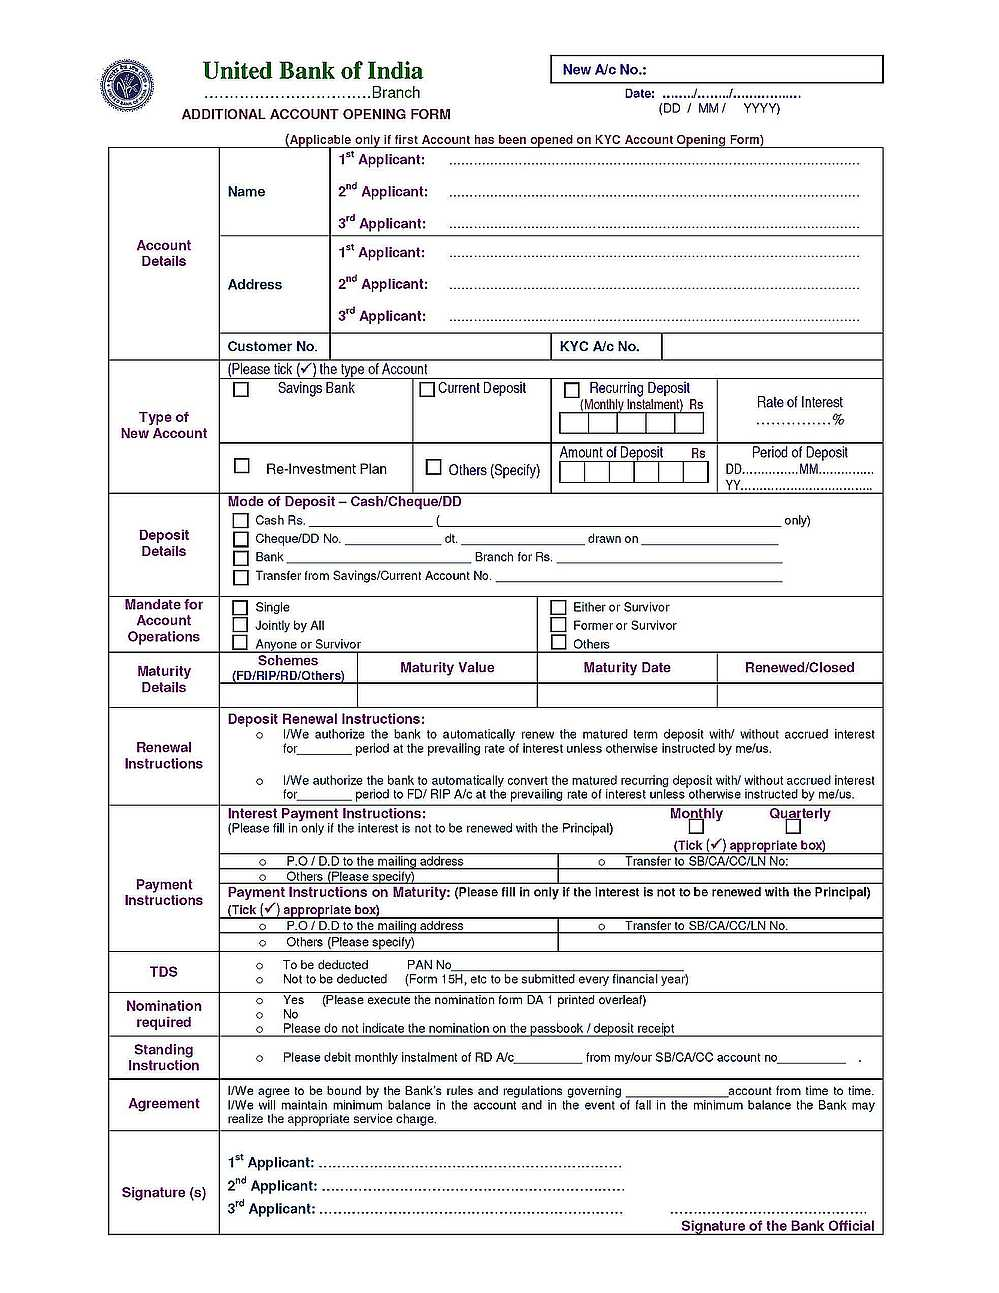 union bank of india kyc form in hindi